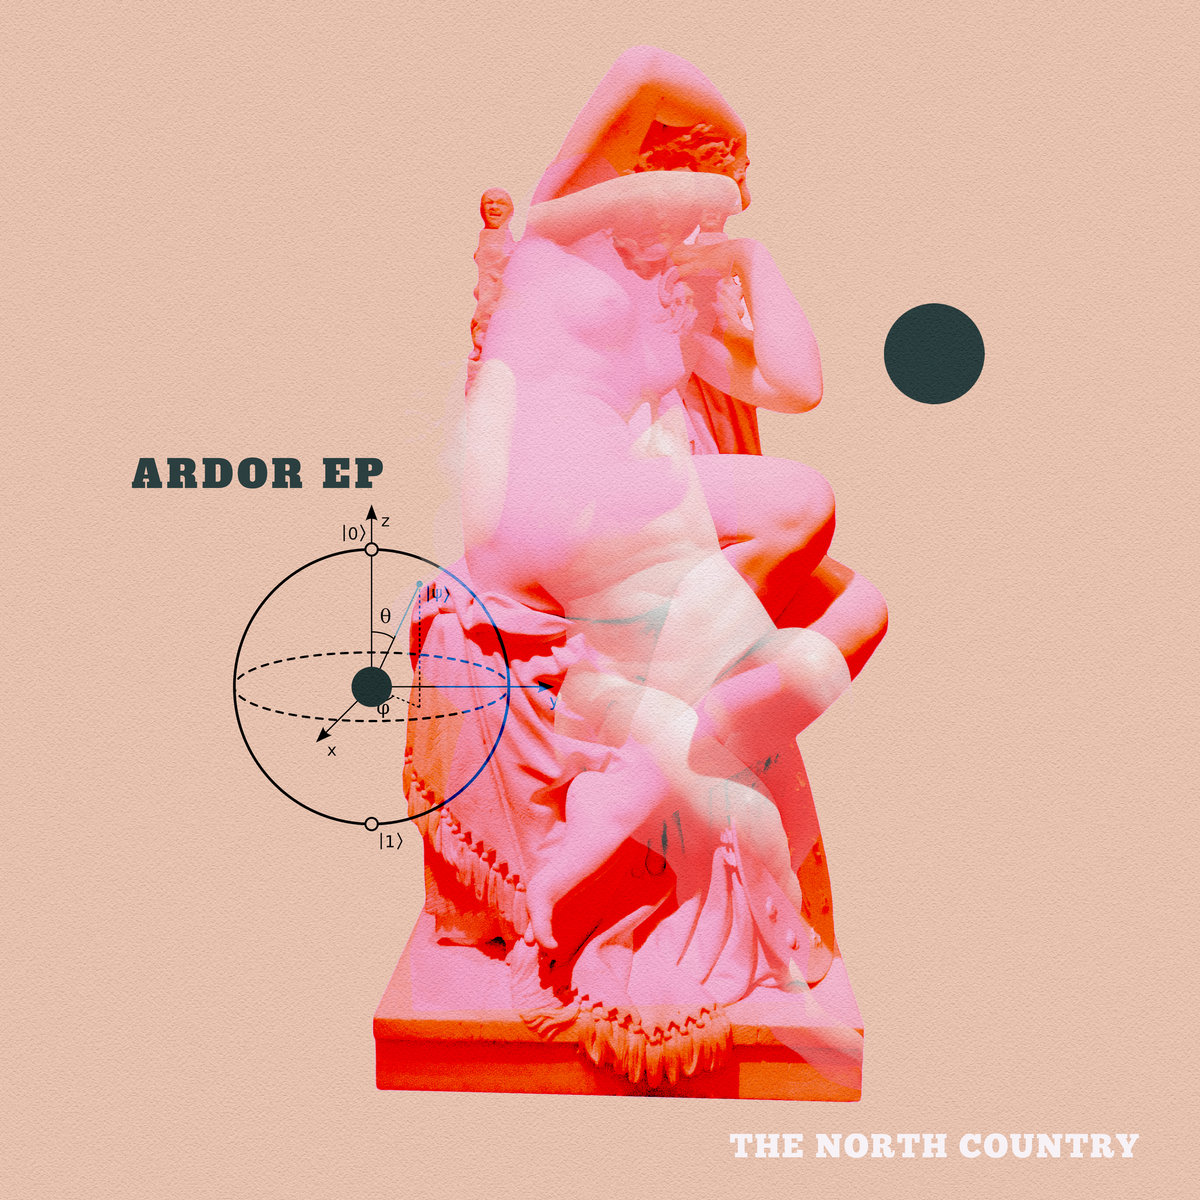 Ardor EP    The North Country    LINKS   Official Site   Facebook   Twitter   Bandcamp    LISTEN ON   Spotify   Apple Music